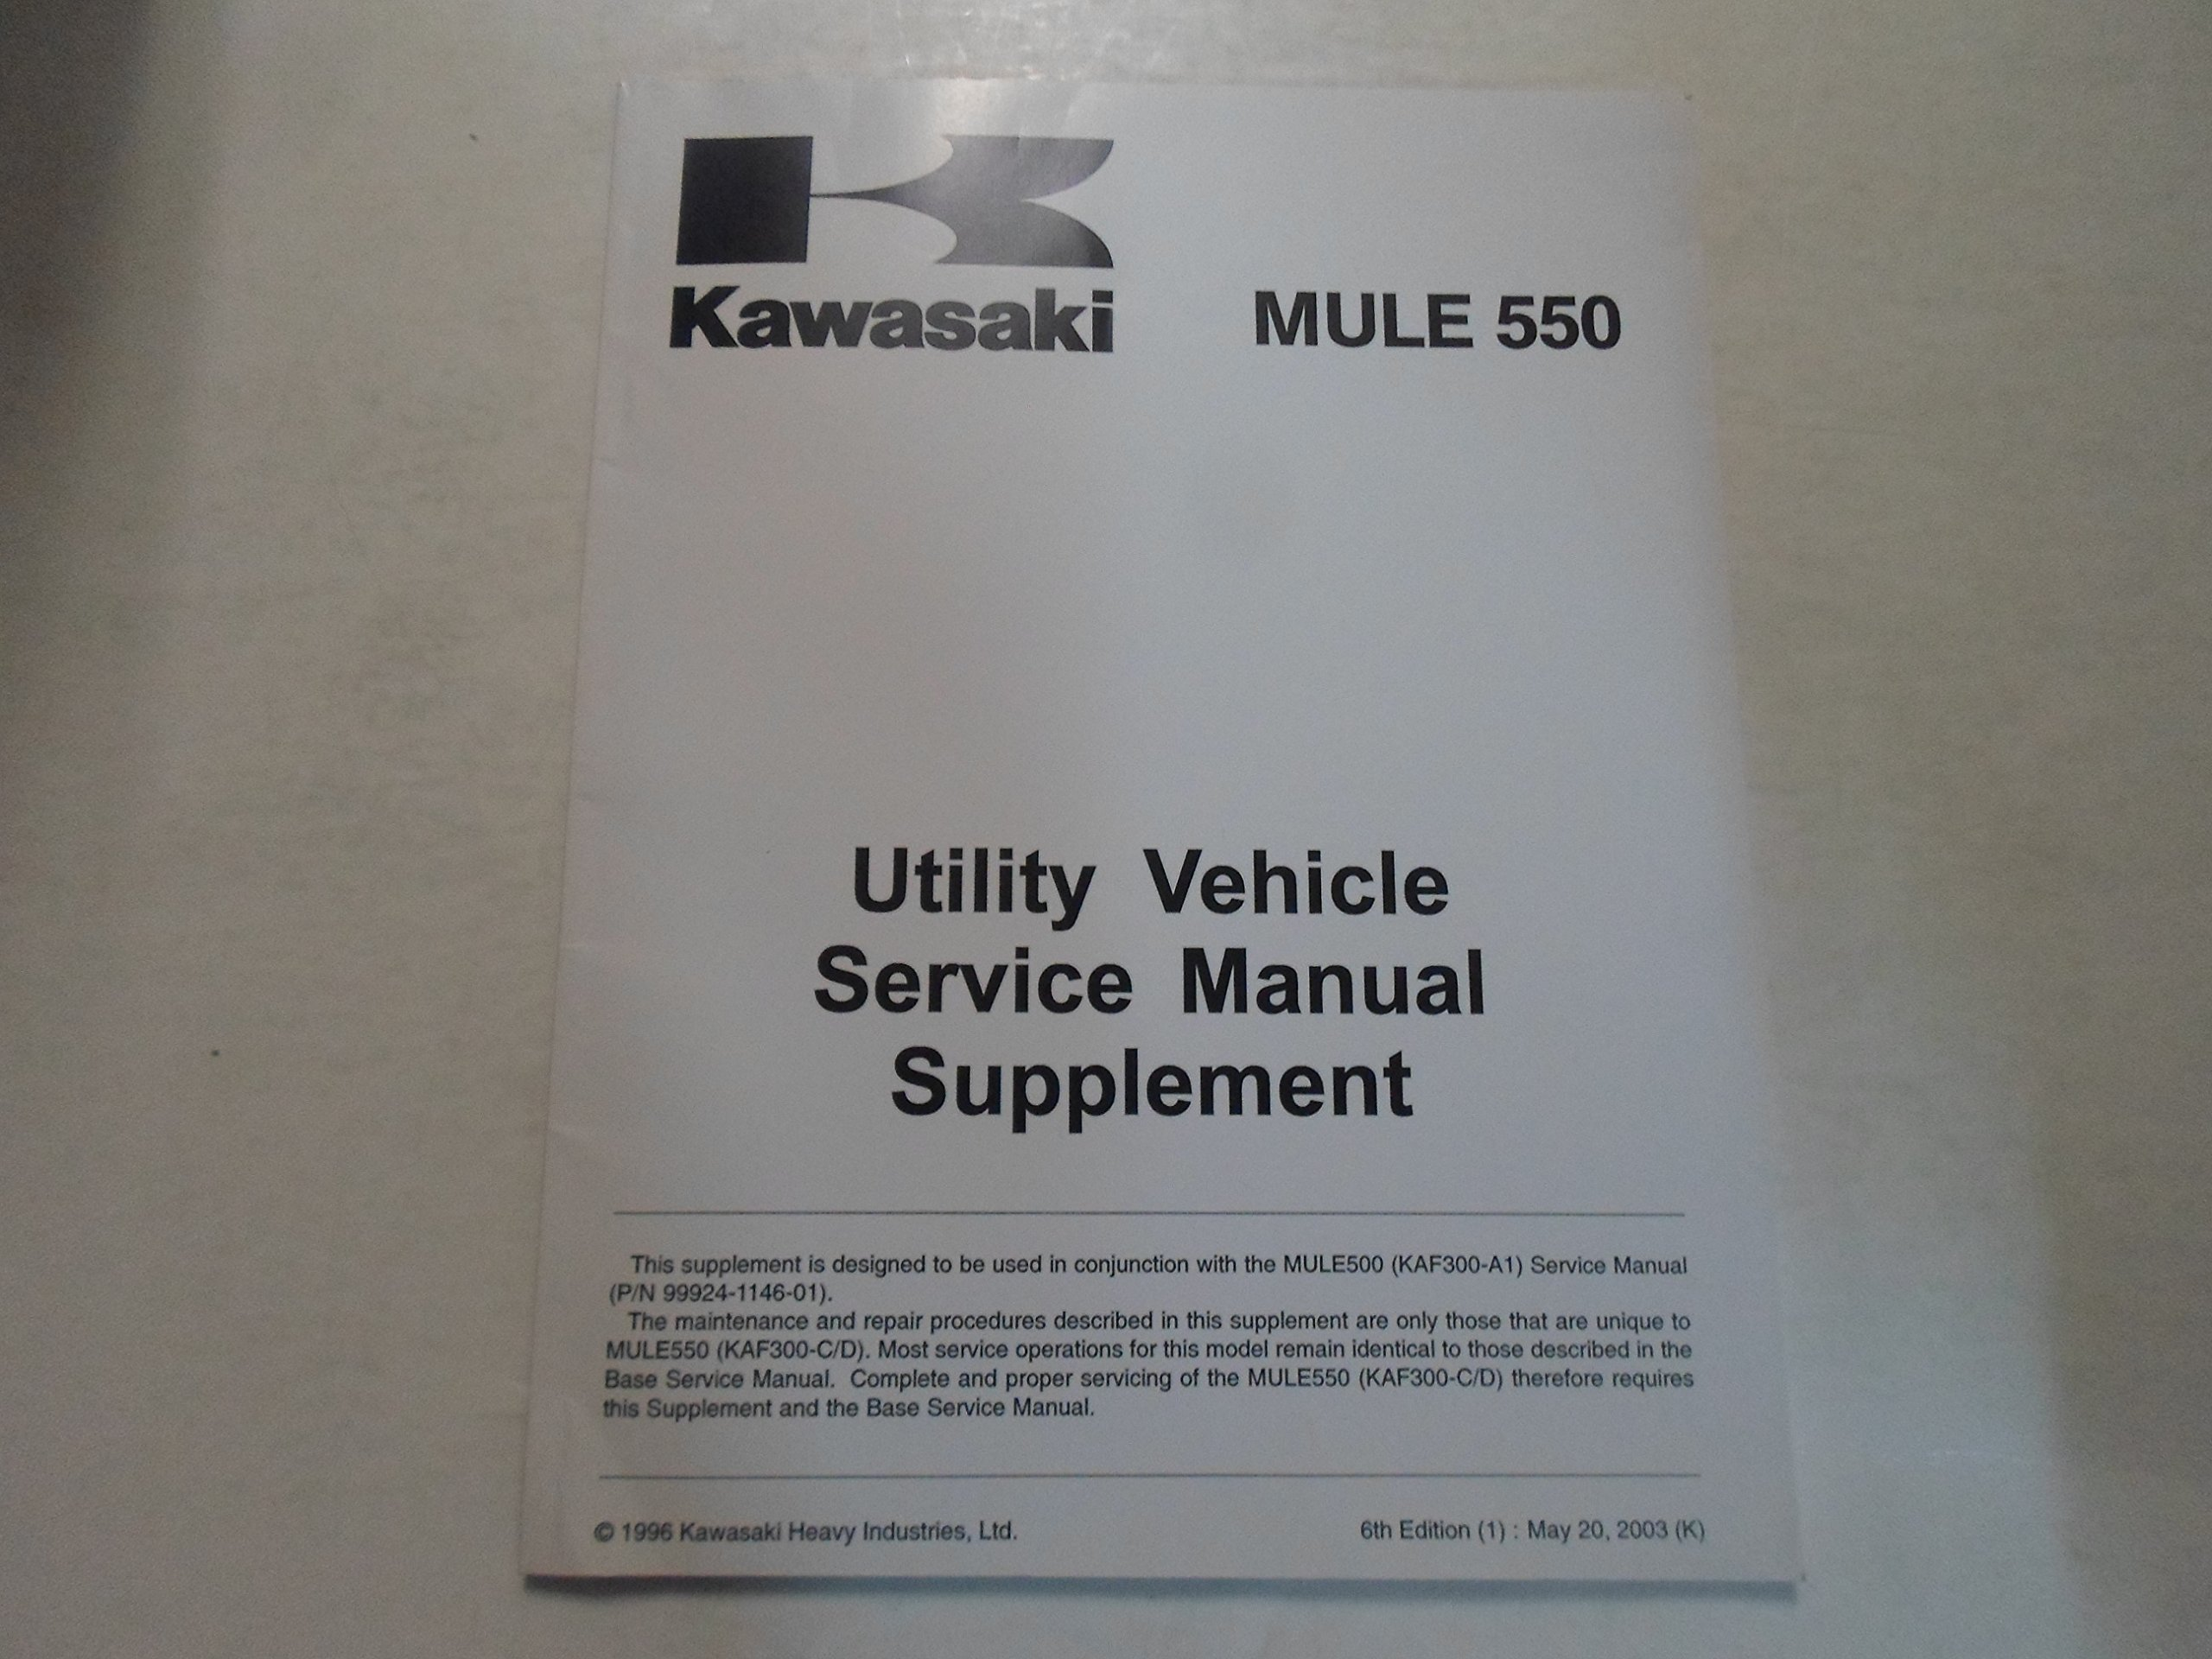 1997 Kawasaki Mule 550 Utility Vehicle Service Manual Supplement FACTORY  BOOK: Kawasaki: Amazon.com: Books